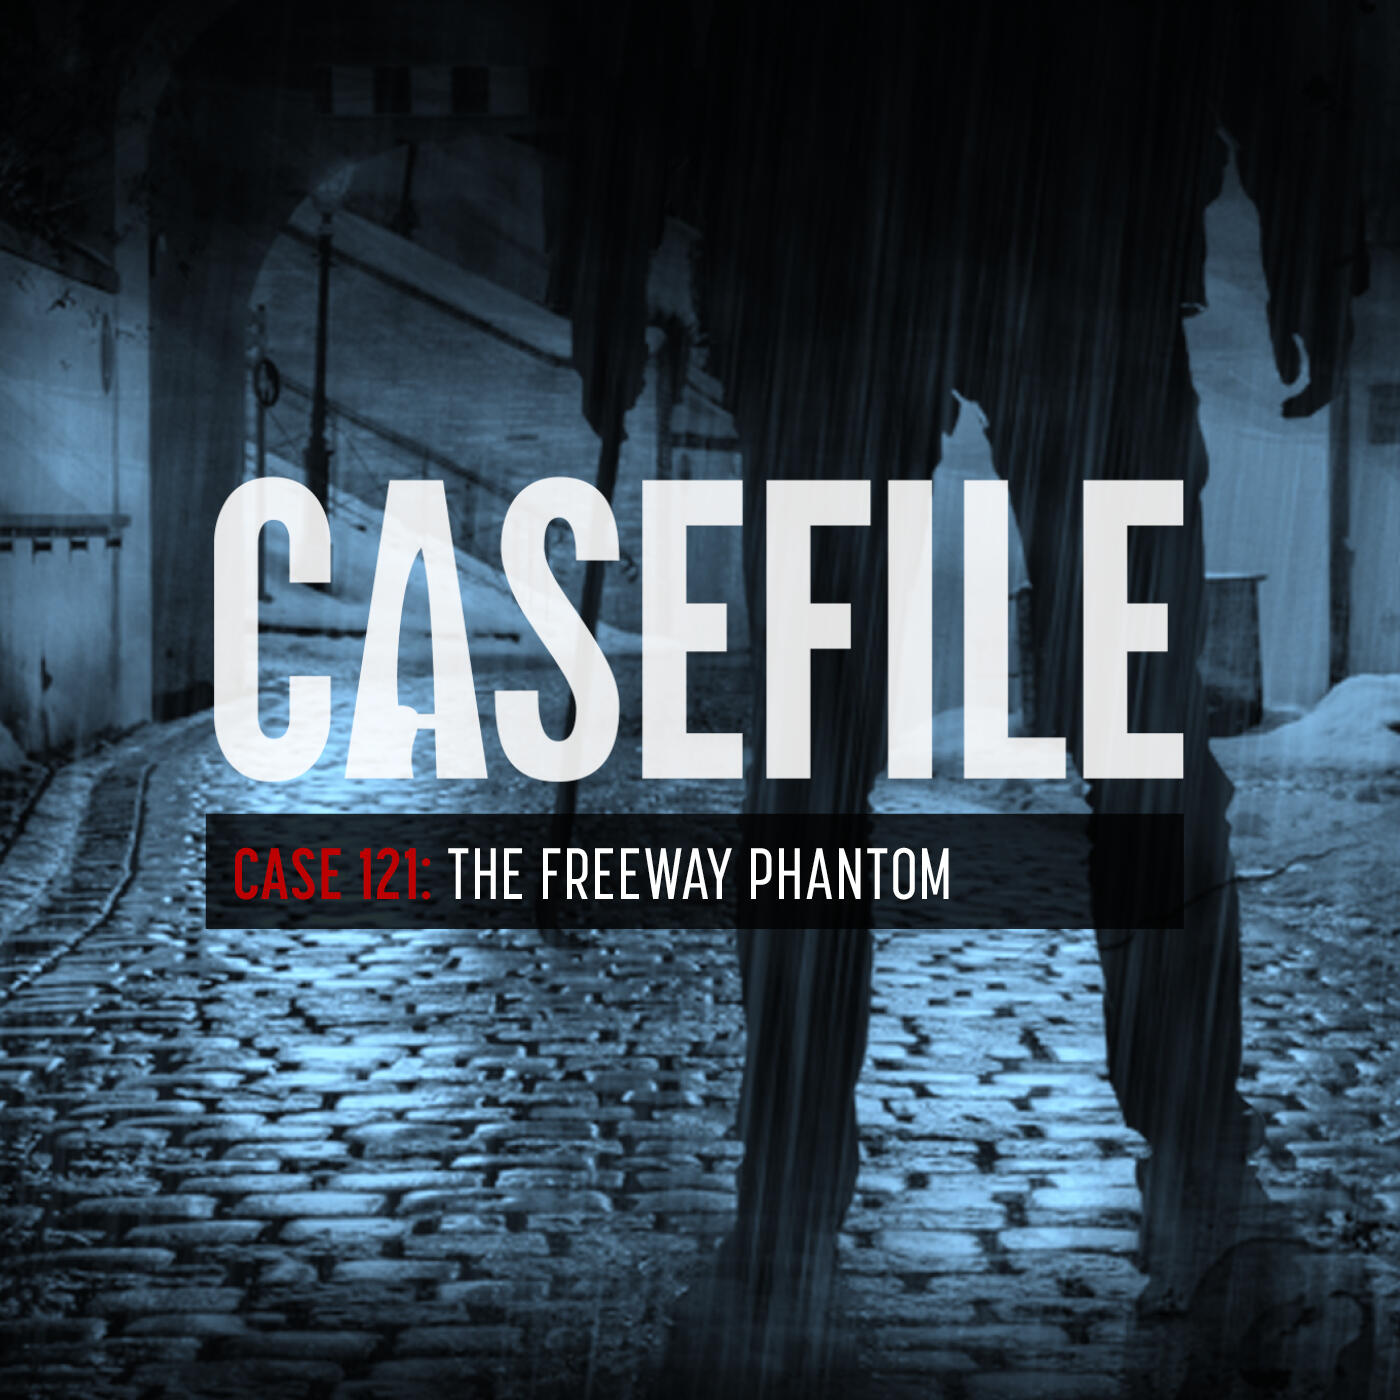 Case 121: The Freeway Phantom